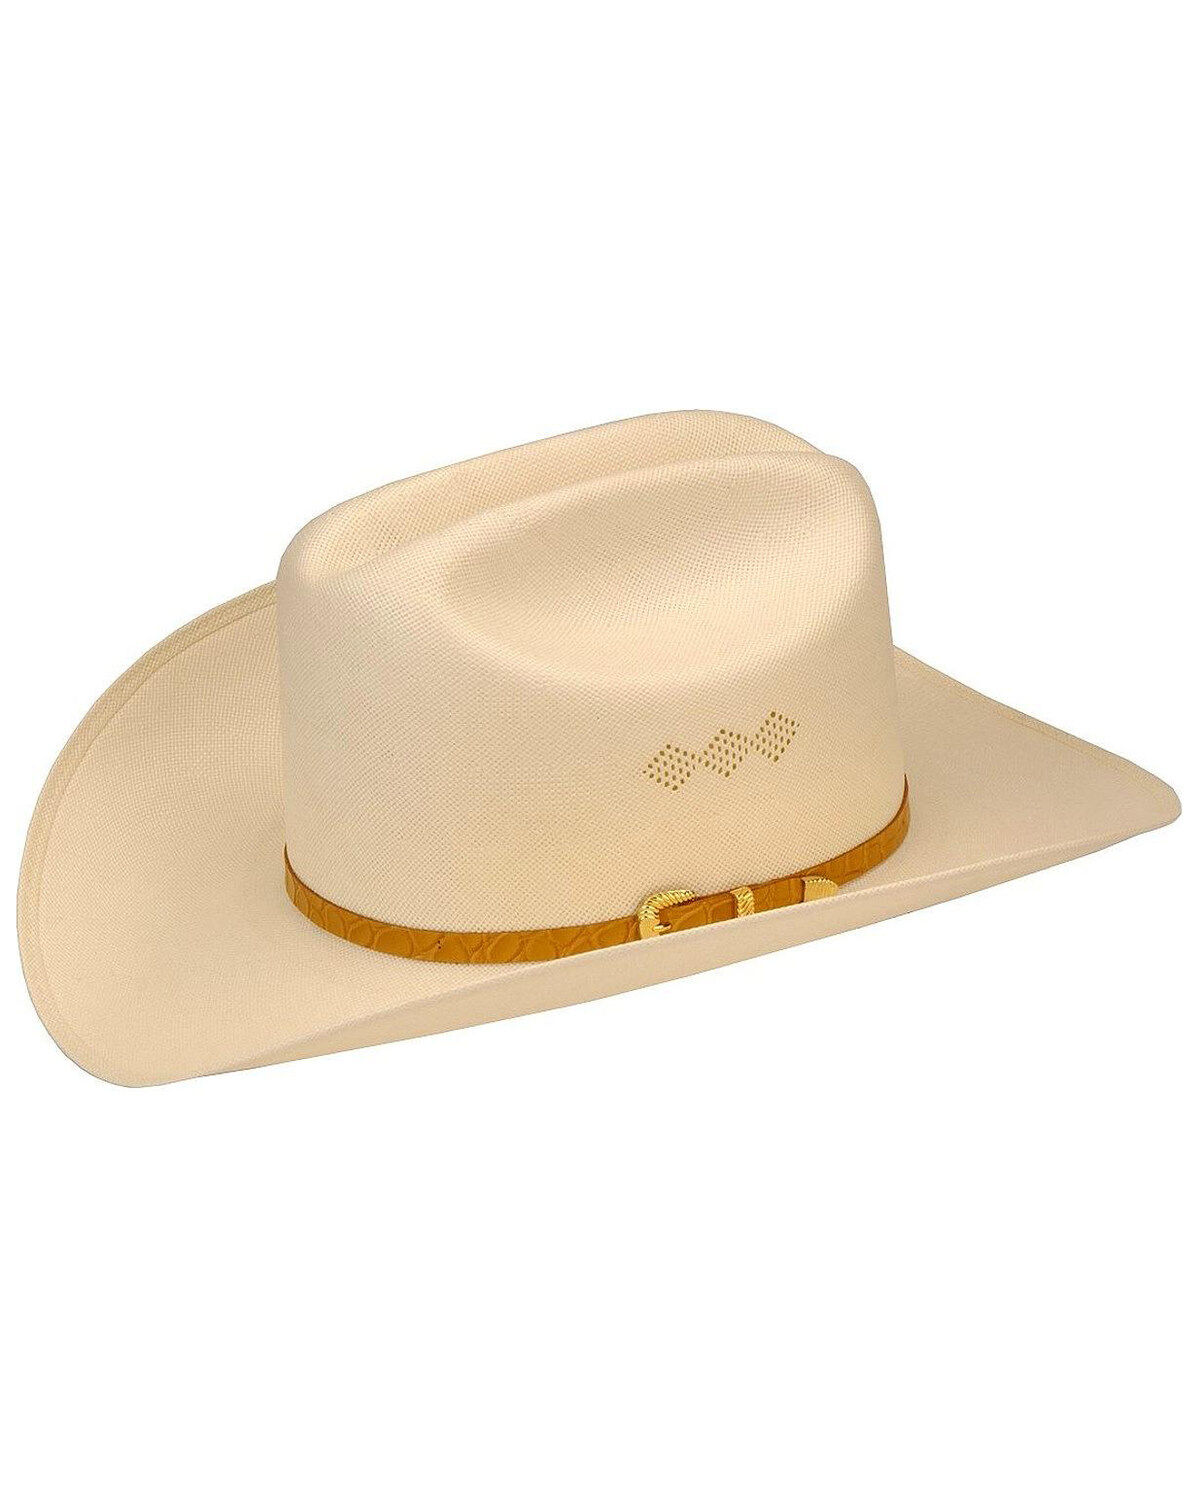 Men s Straw Hats - Boot Barn da658ade8a3